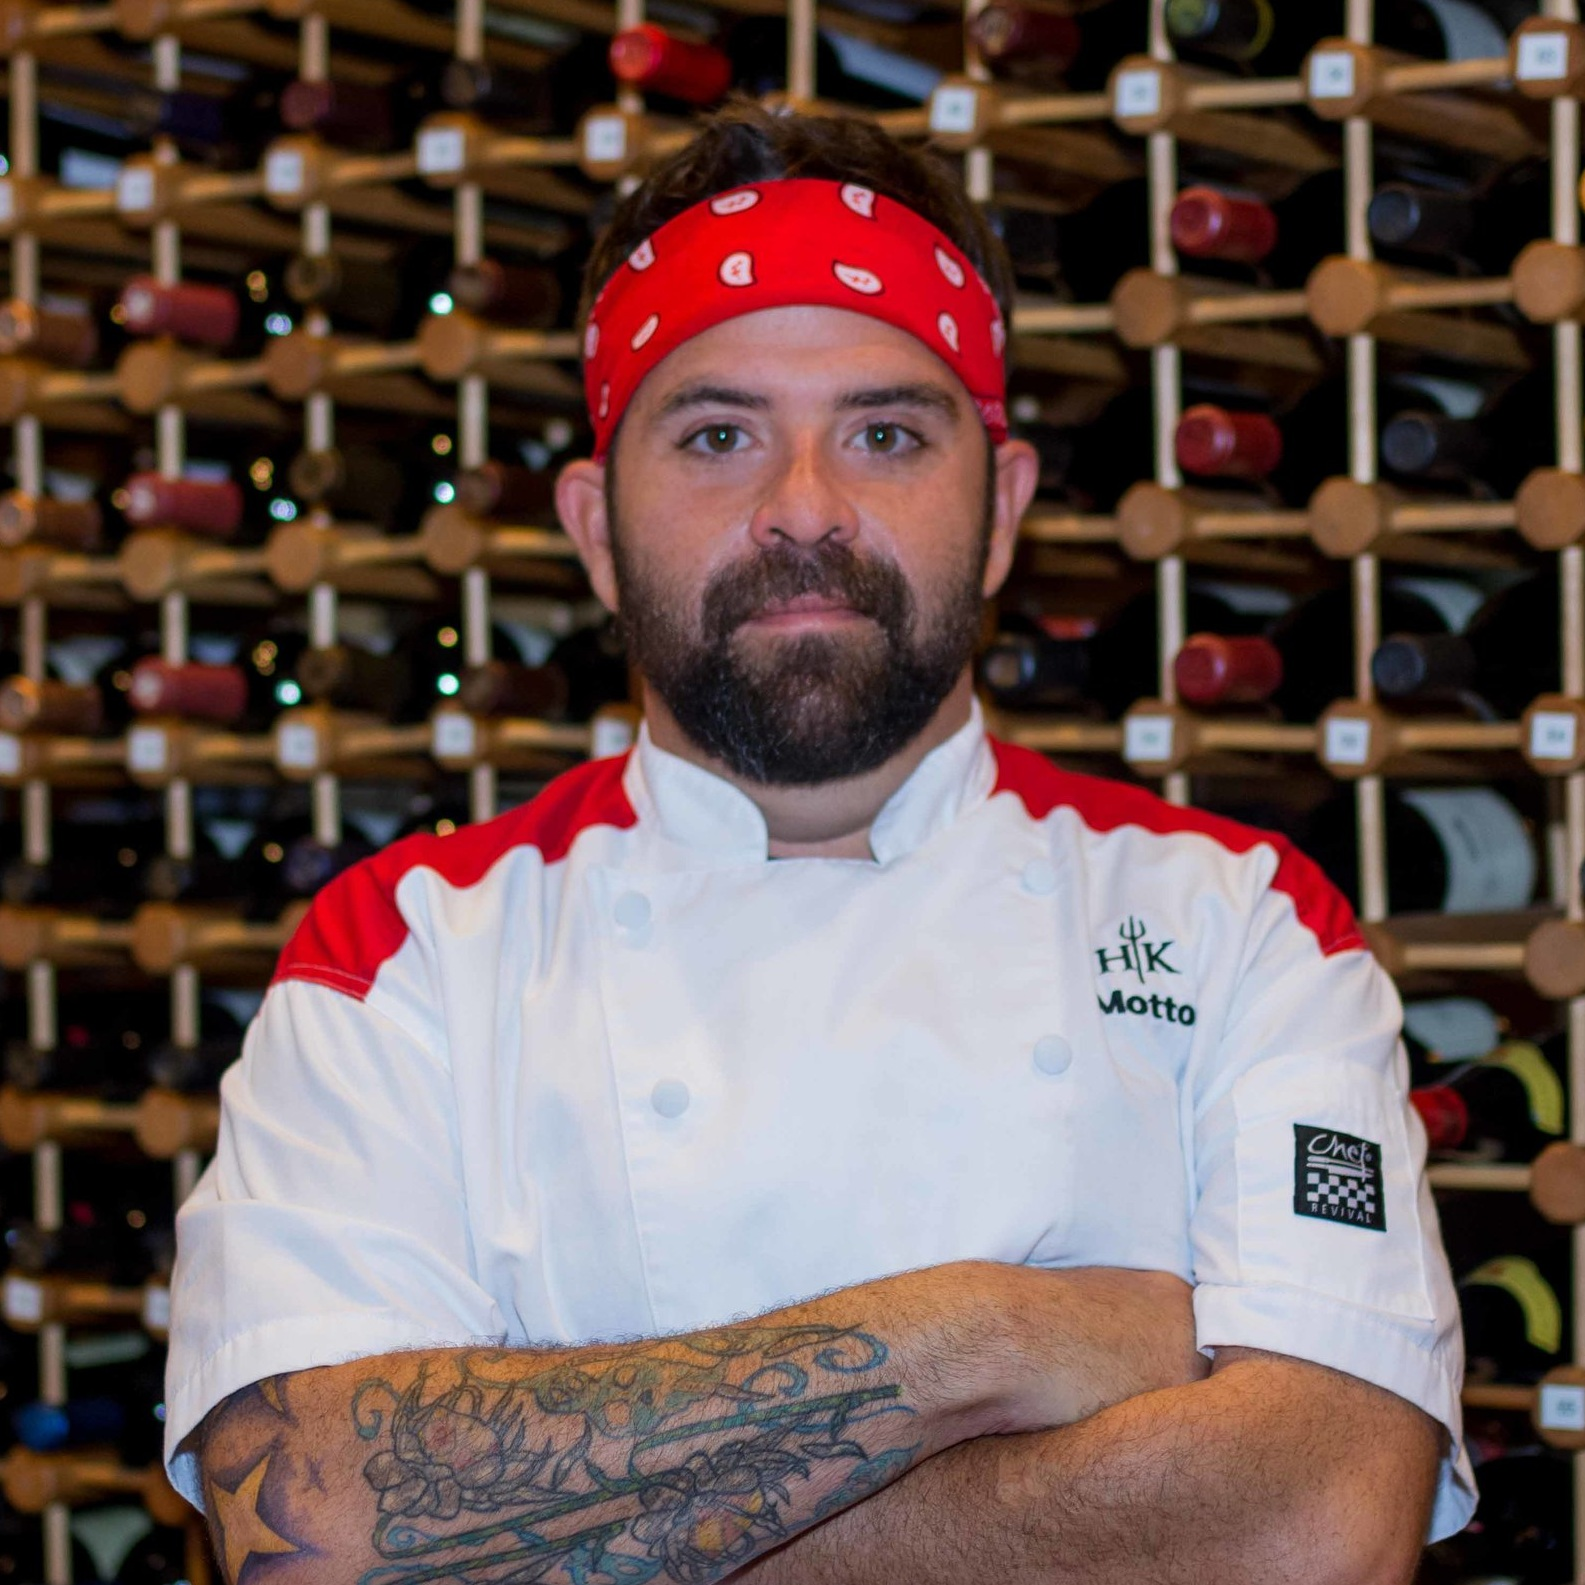 chris motto  2018 nola chefs taste challenge finalist;  hell's kitchen